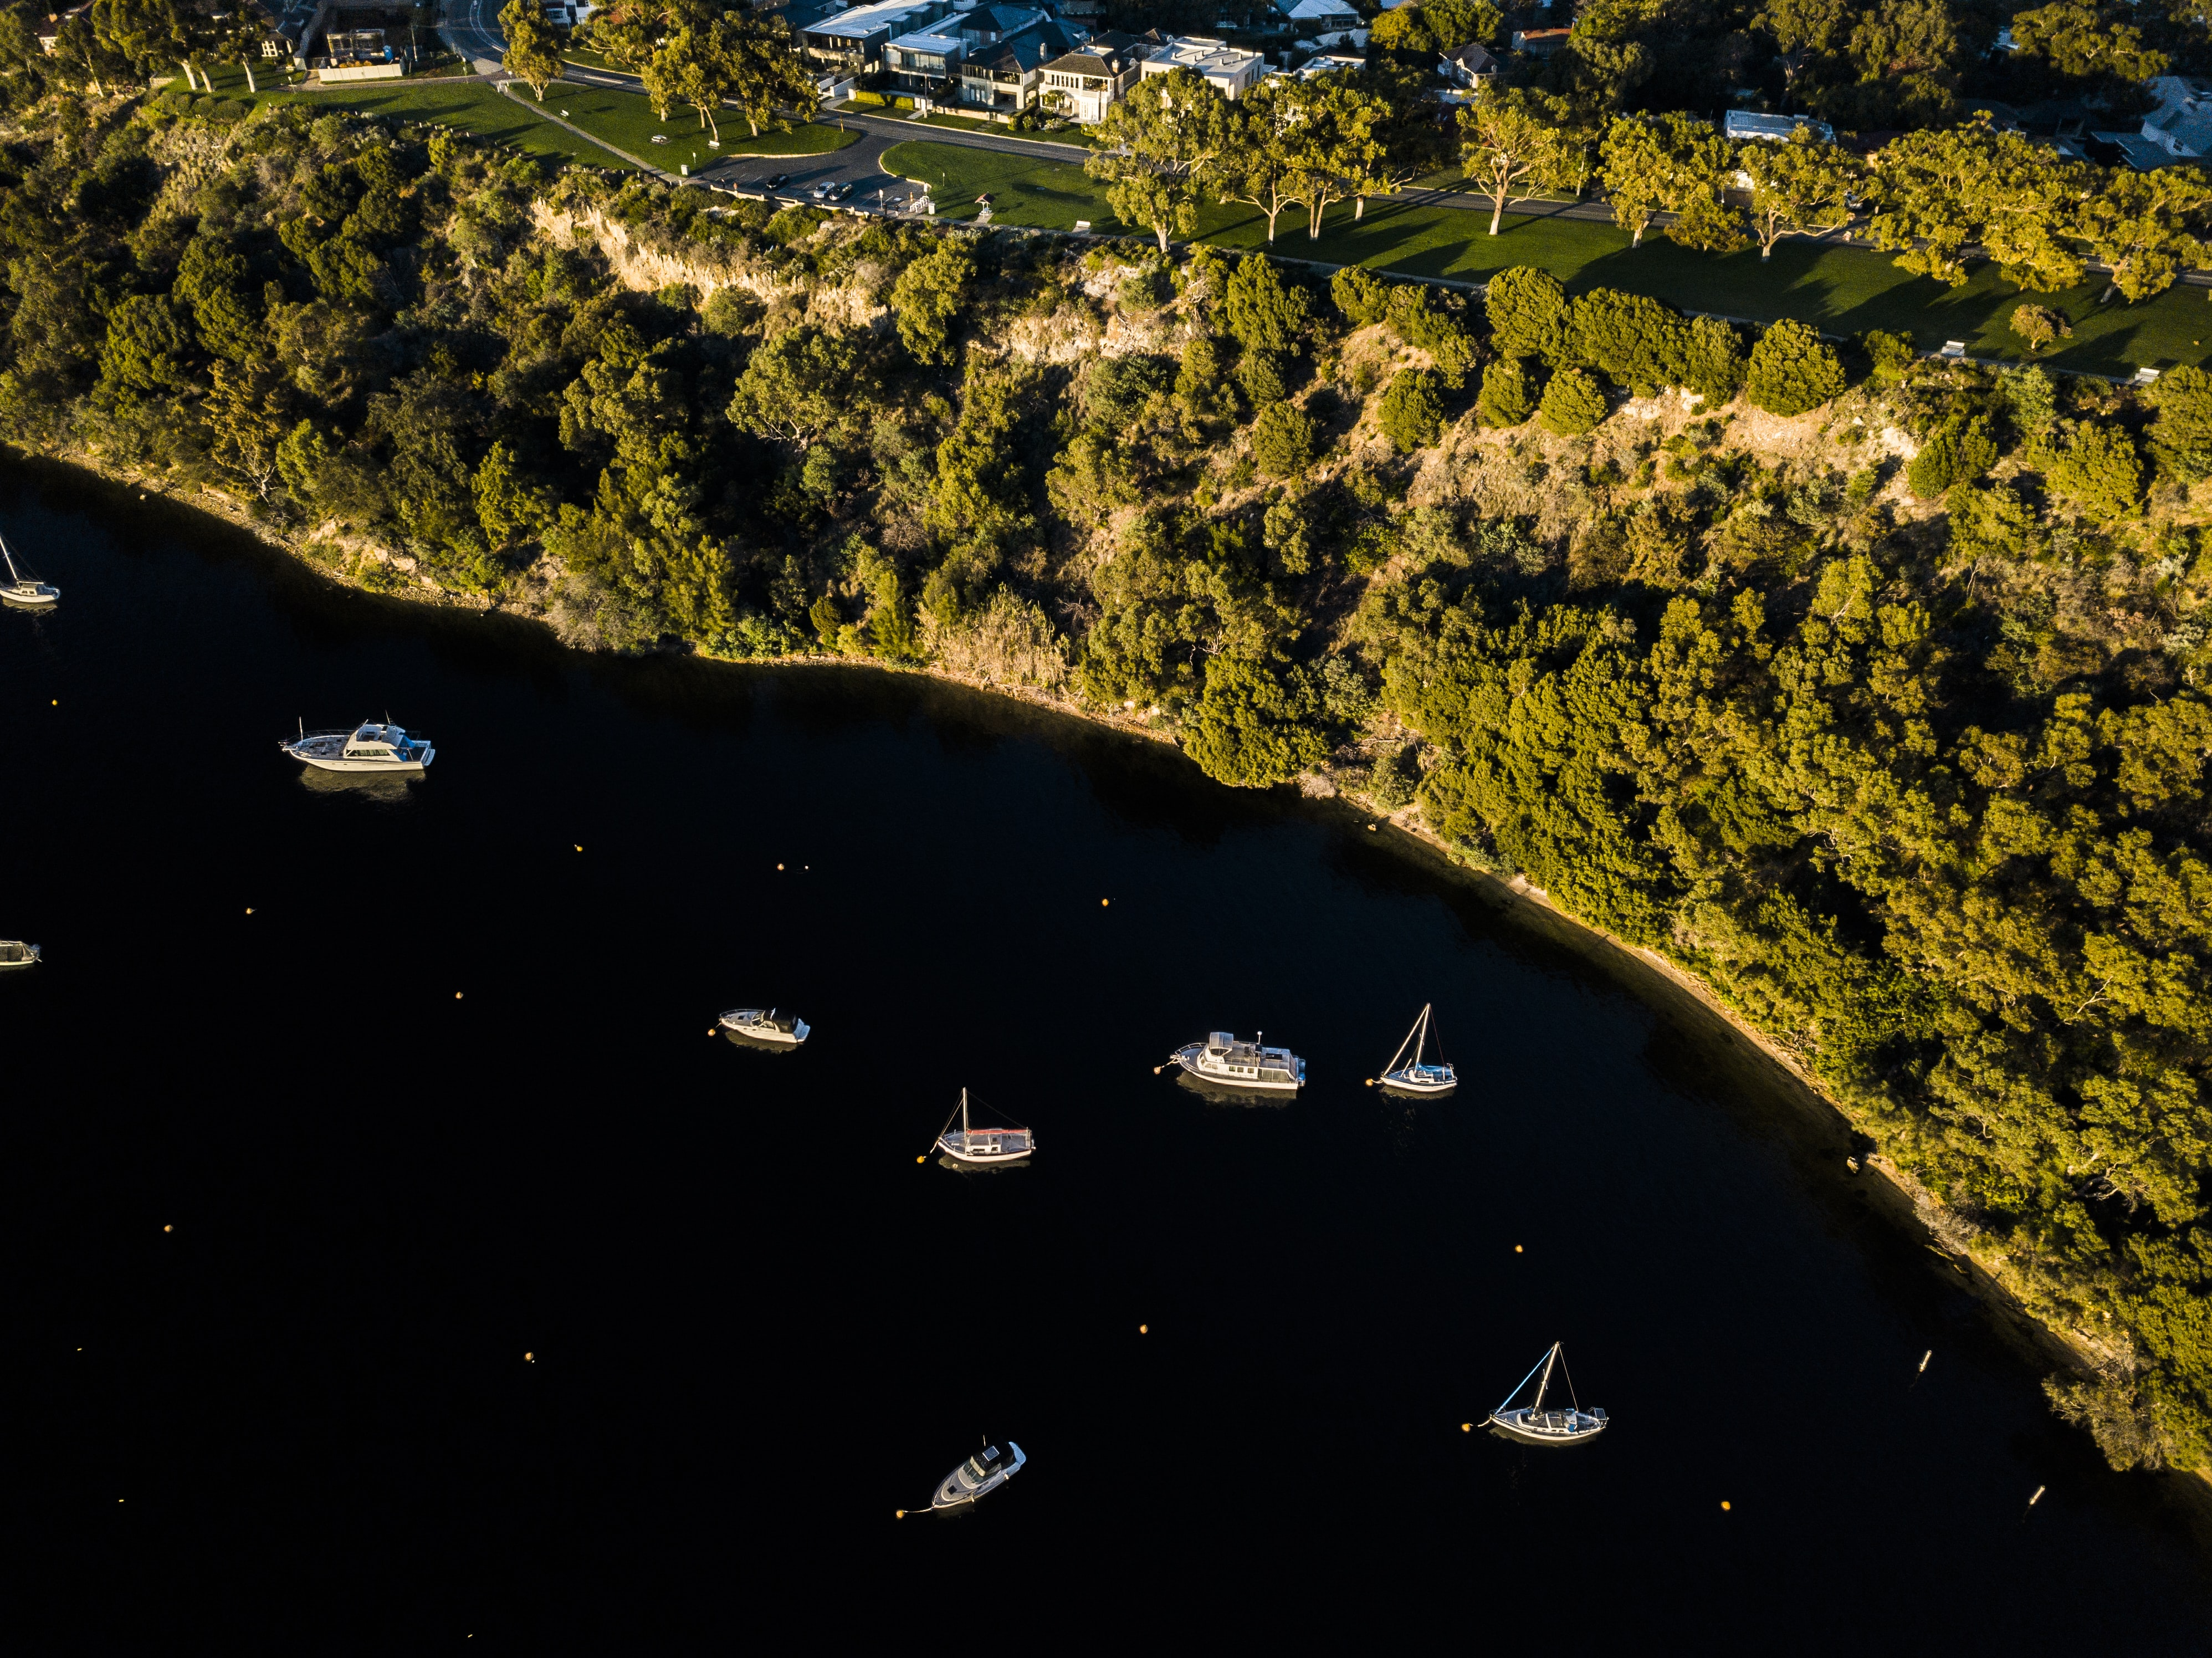 boats on body of water near trees and buildings miniature